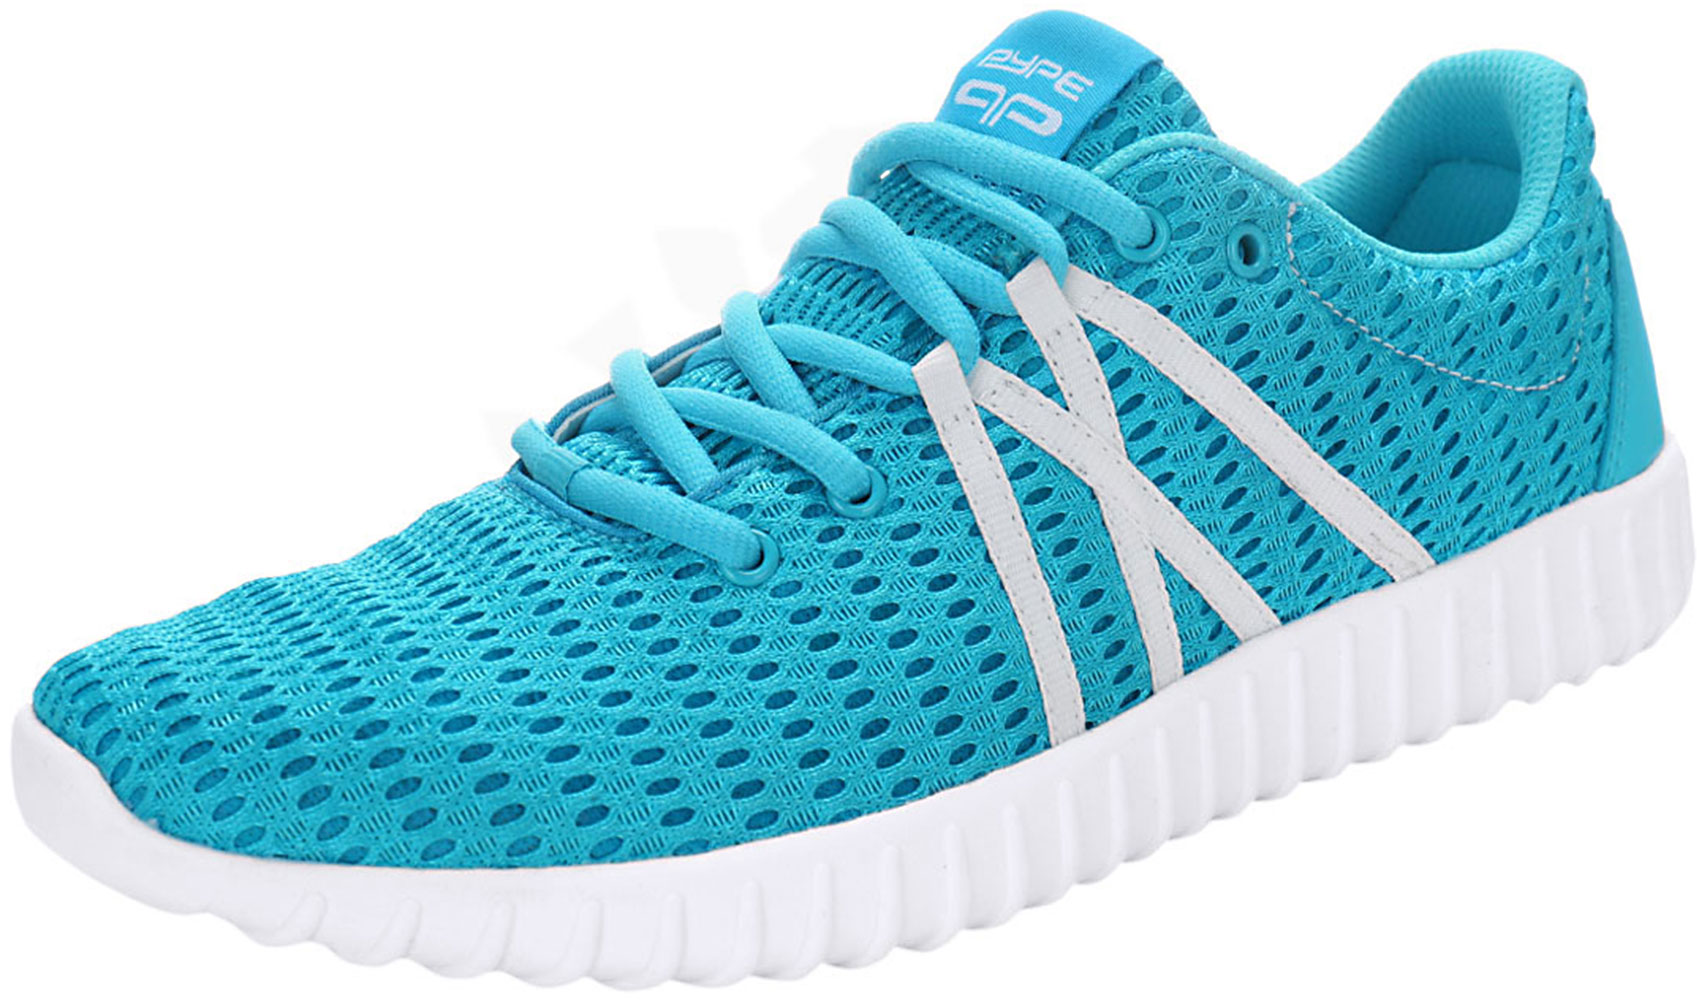 PYPE Women Contrast Color Lace Up Mesh Training Sneakers Blue US 9.5